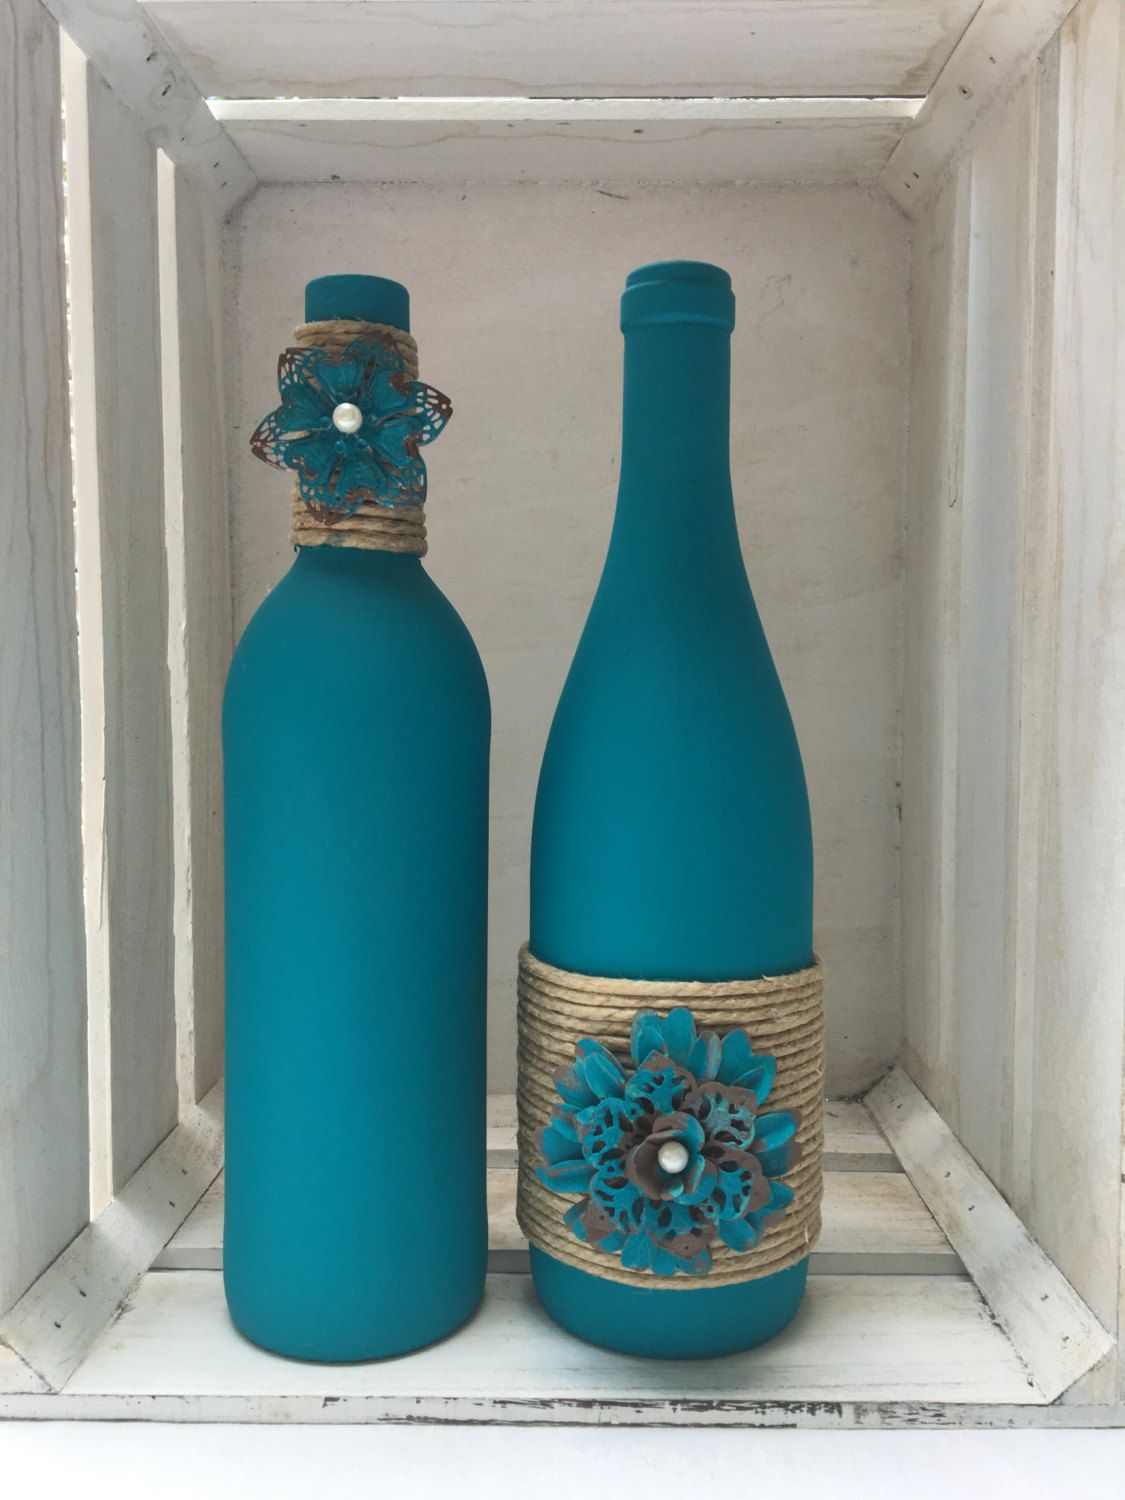 Como Decorar Botellas De Vidrio Manualidades Teal Chalk Painted Wine Bottles With Twine And Metal Flowers